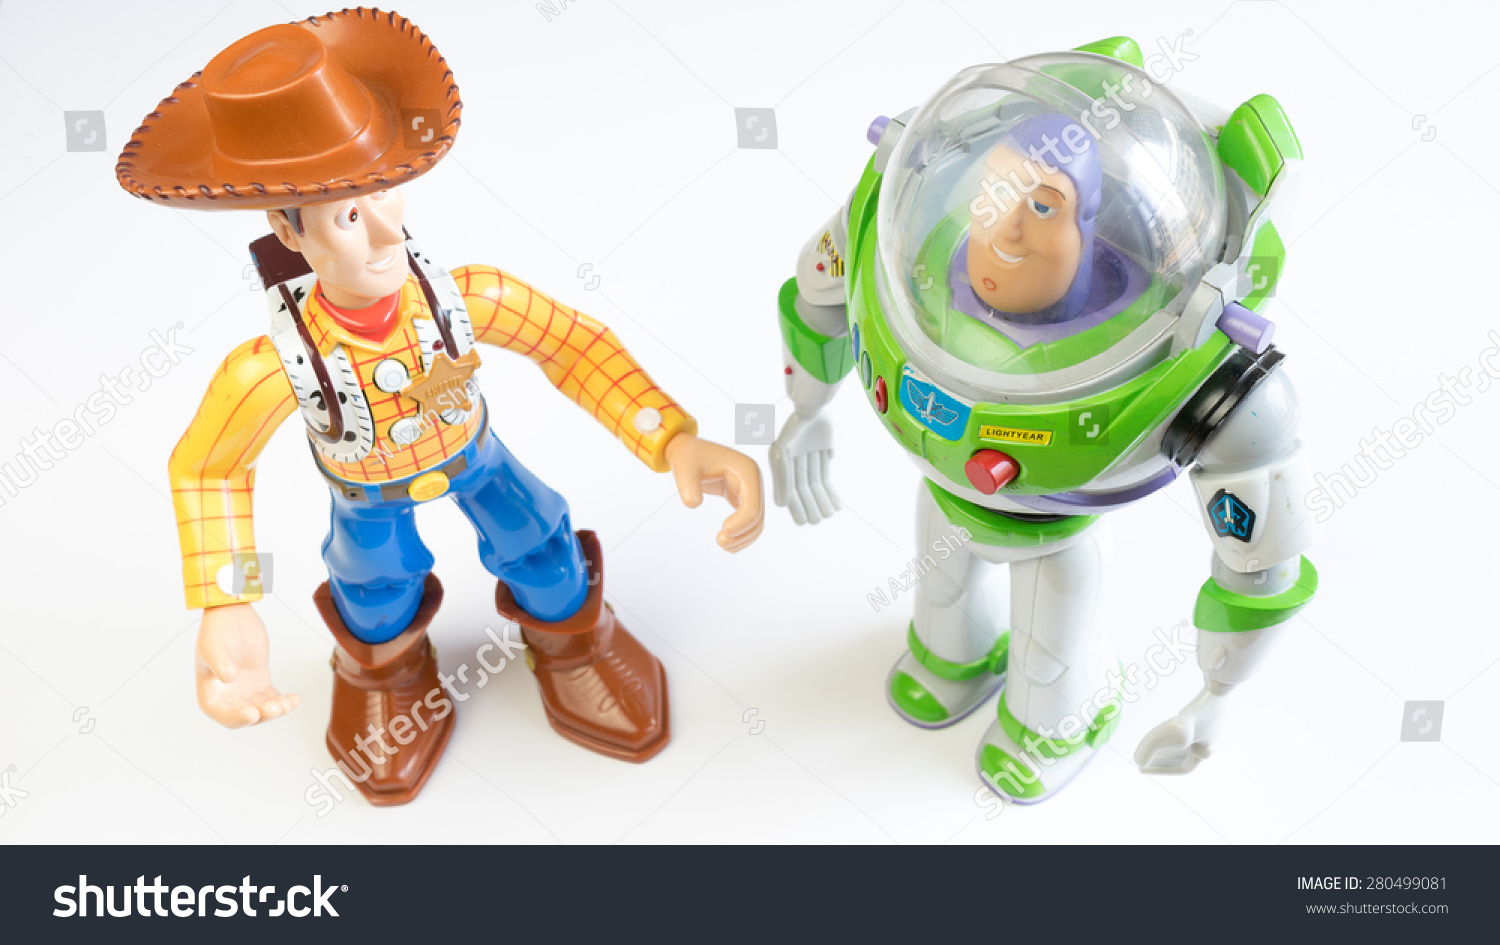 Woody and Buzz Lightyear robot toy character from Toy Story. Toy Story ...